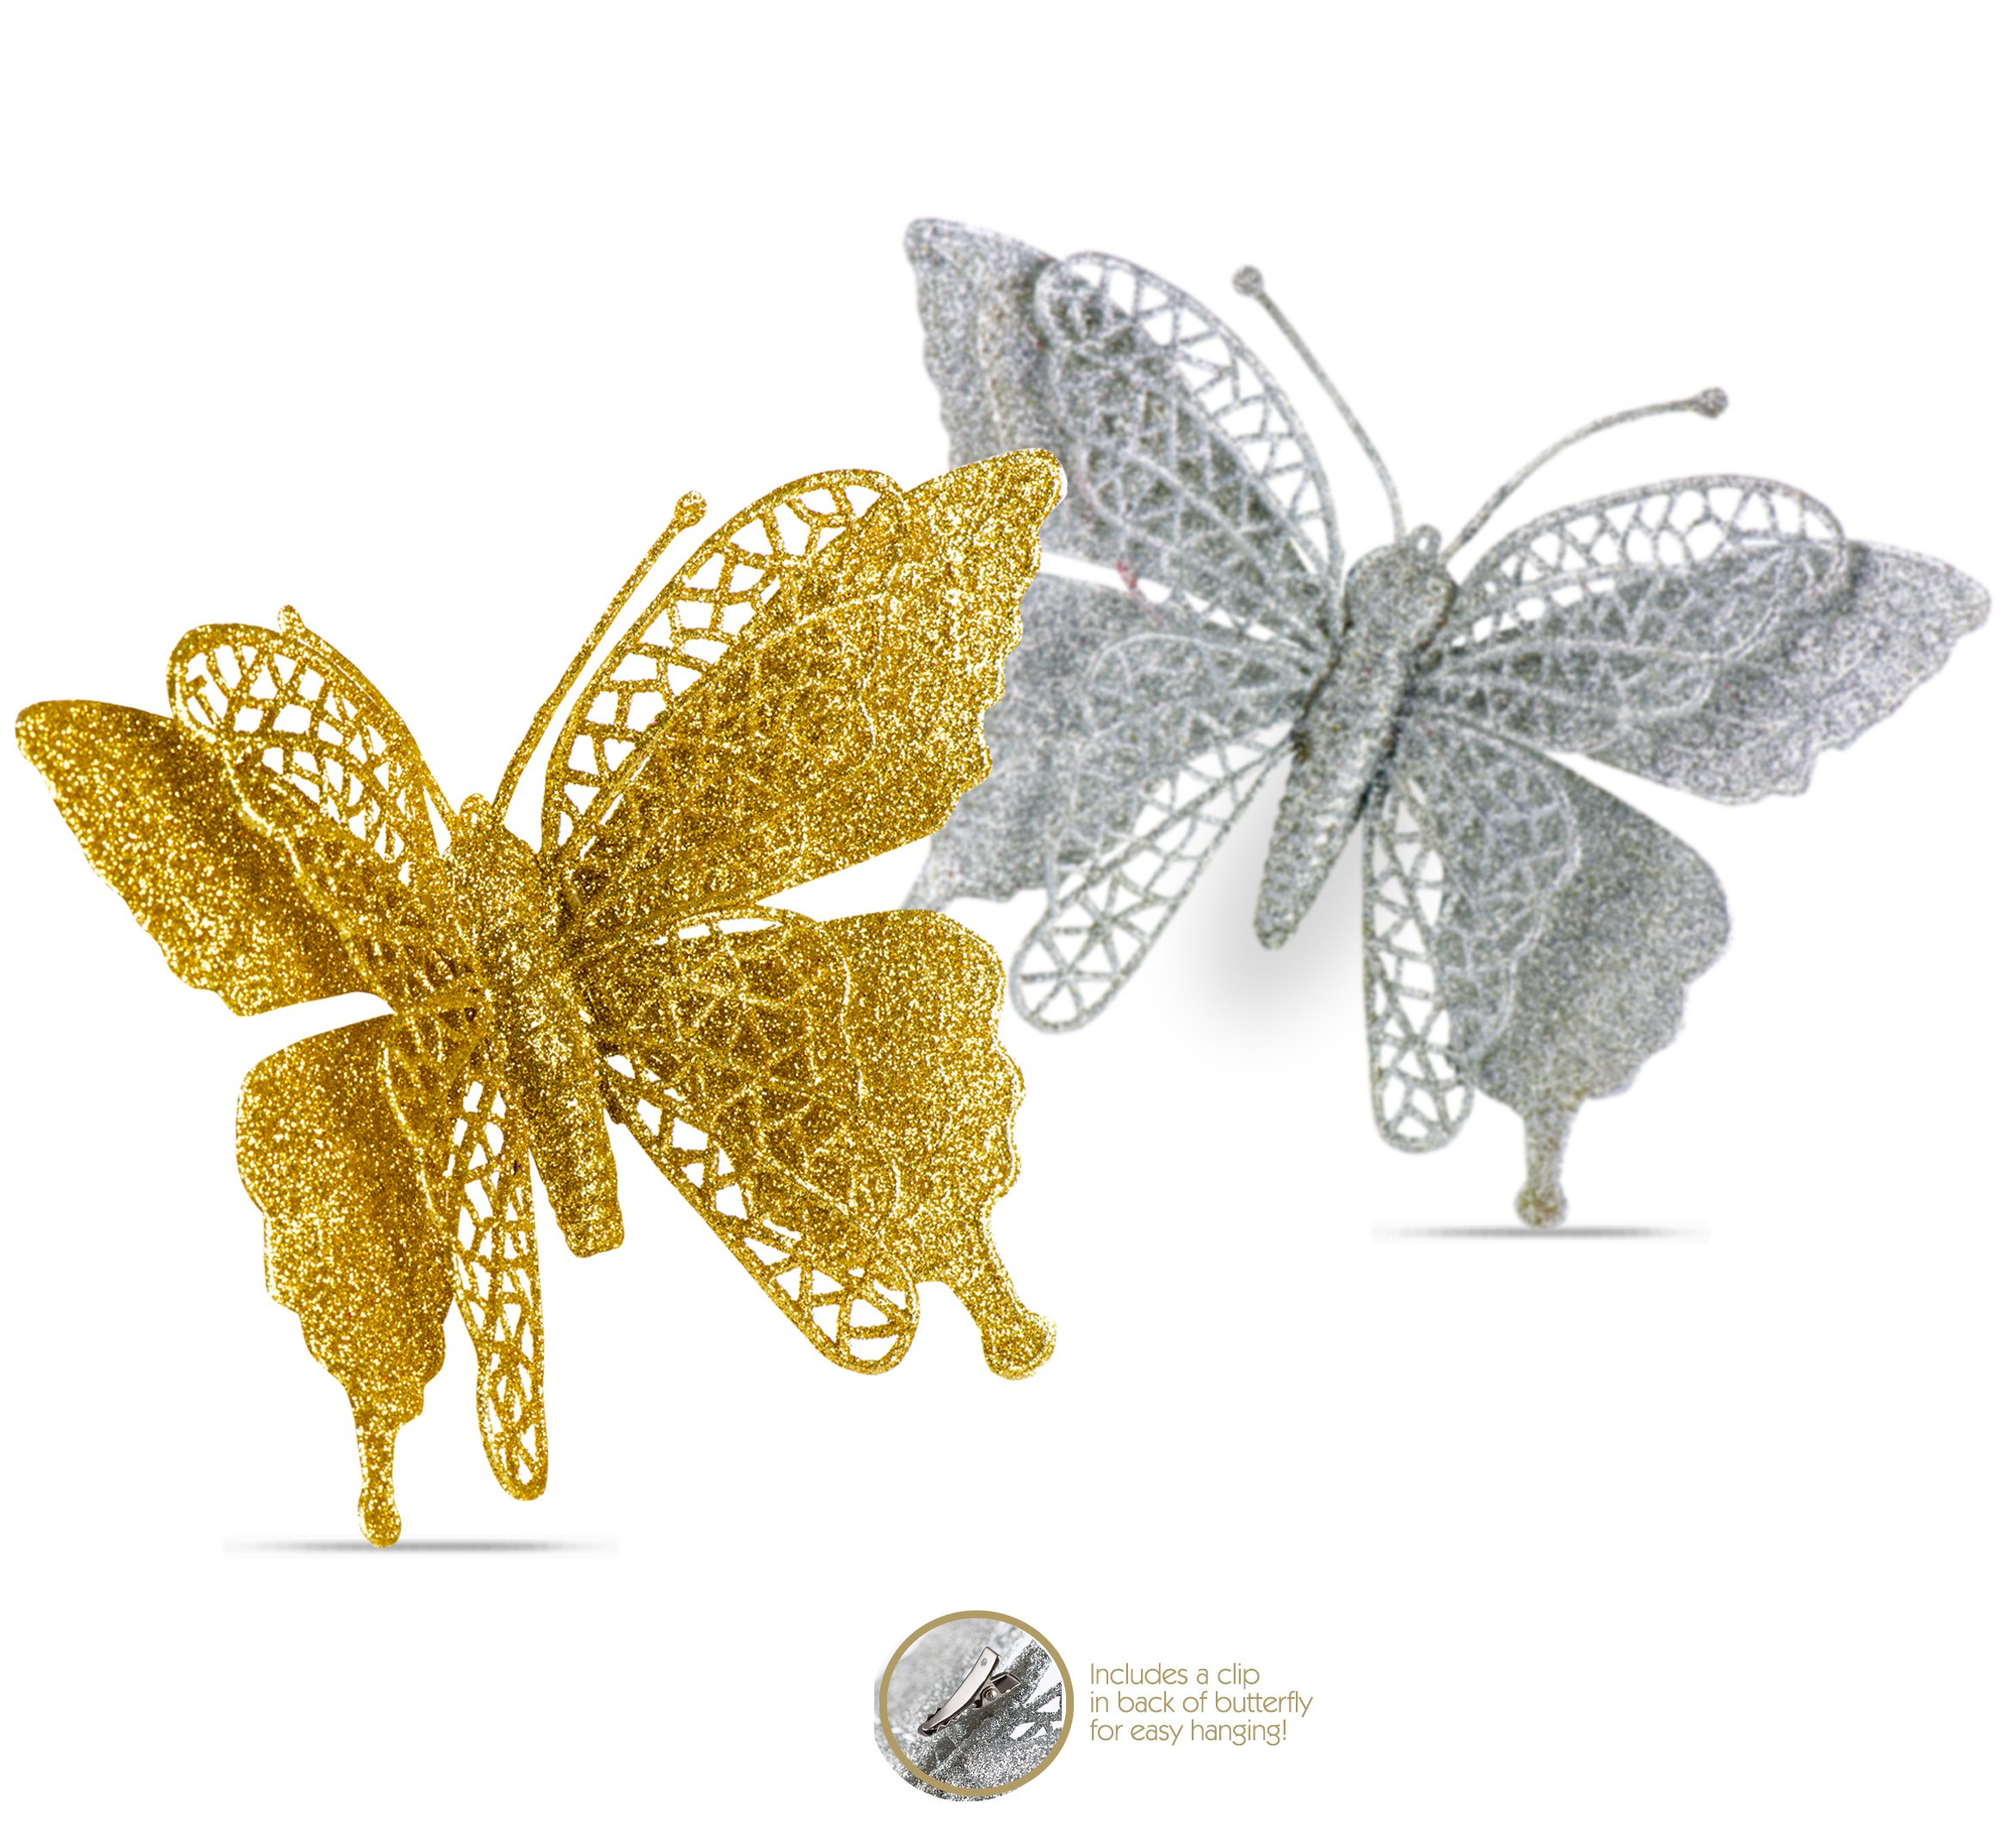 R N' D Toys Butterfly Ornaments, Shatterproof Christmas Tree Ornaments Gold and Silver, Butterfly Decoration Clips for Home, Party, Wedding, Or Holiday Décor (Gold & Silver)